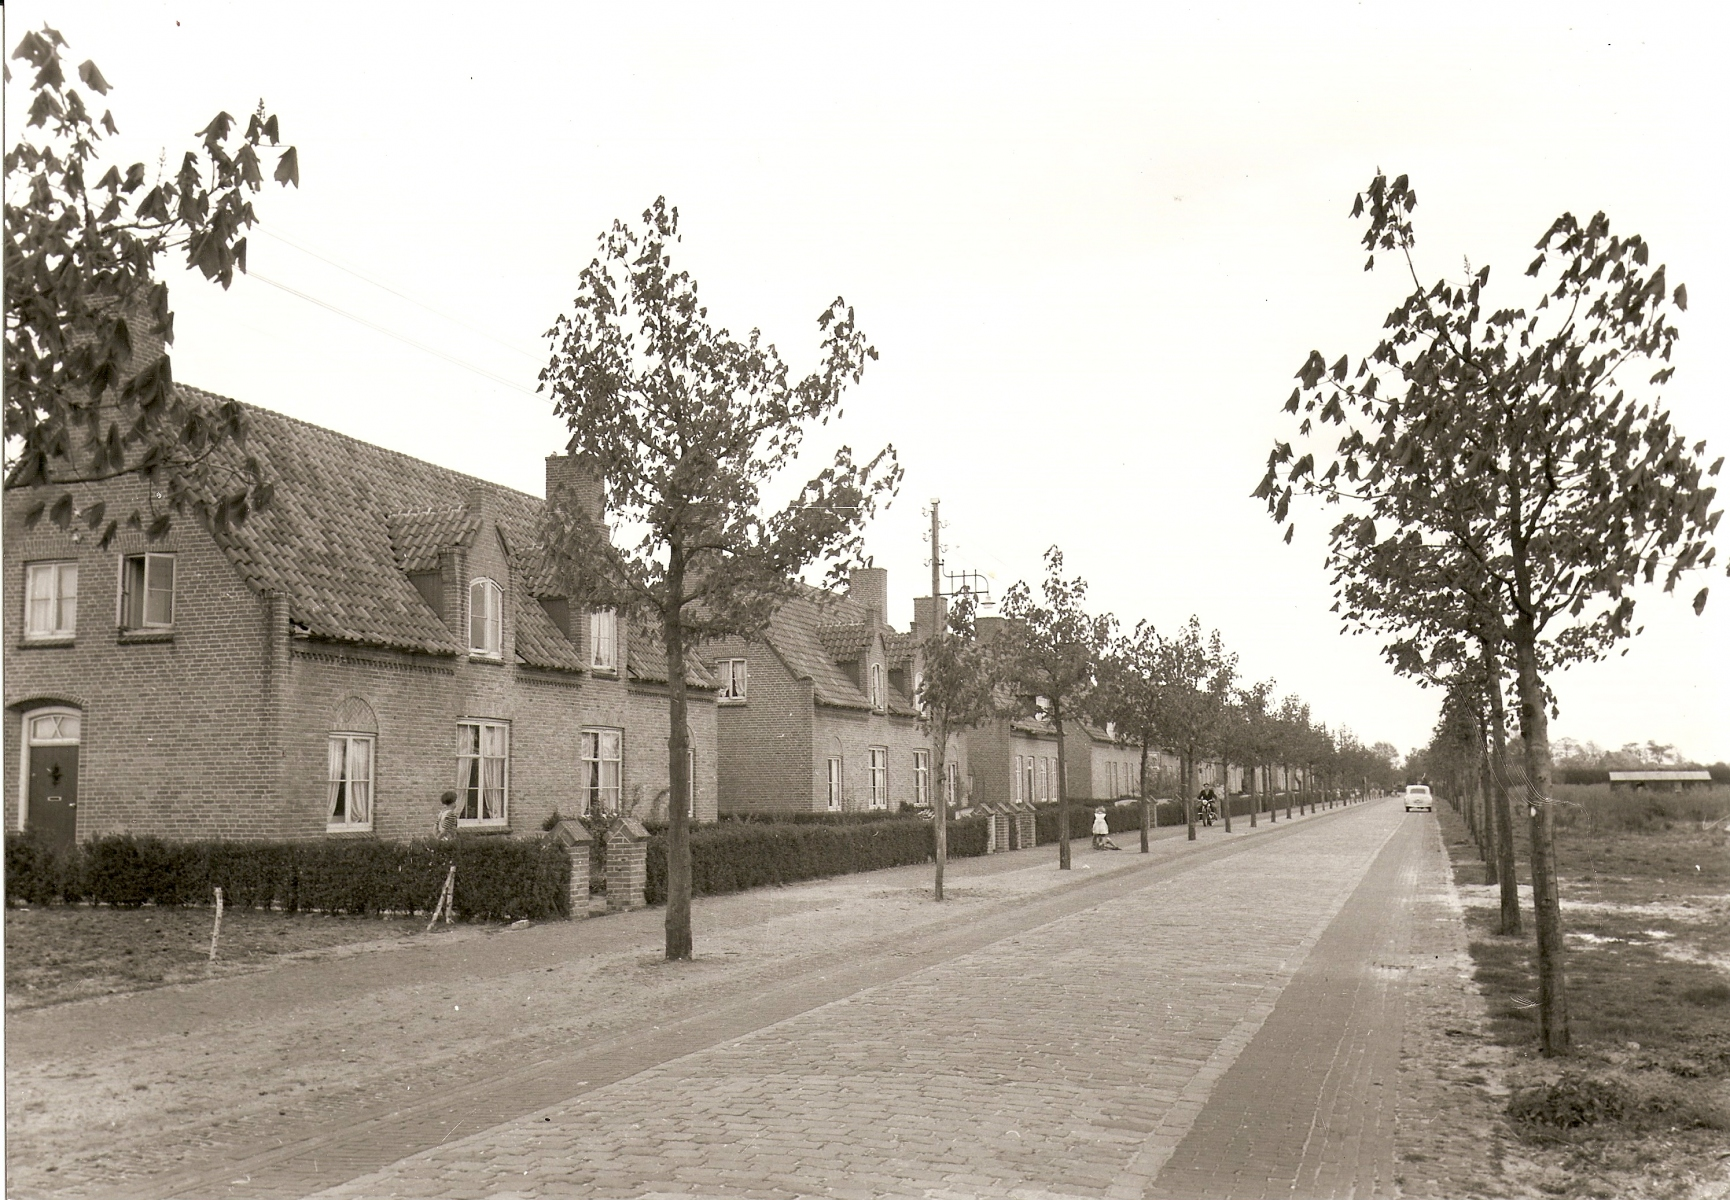 Datering 1950. Schafratstraat